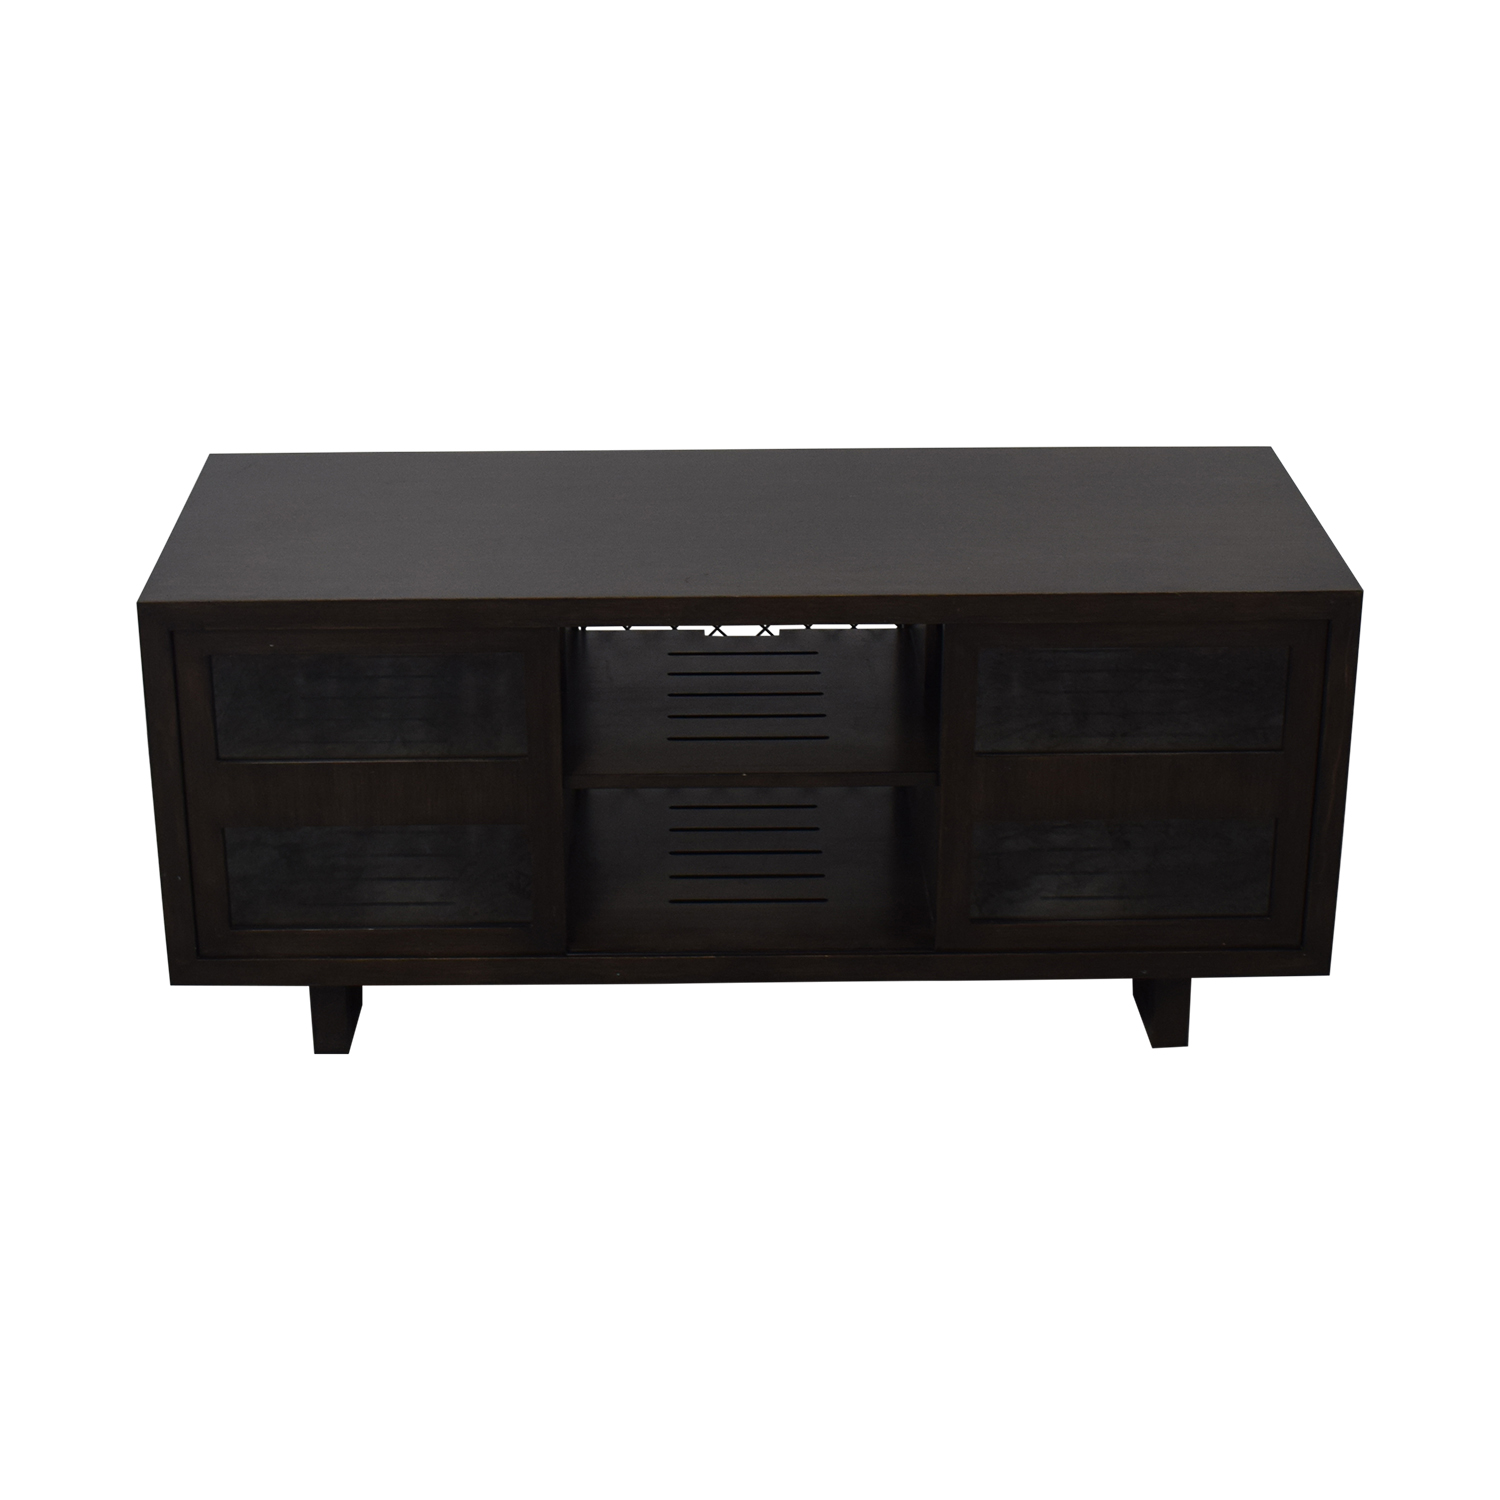 Maria Yee Maria Yee Media Console coupon